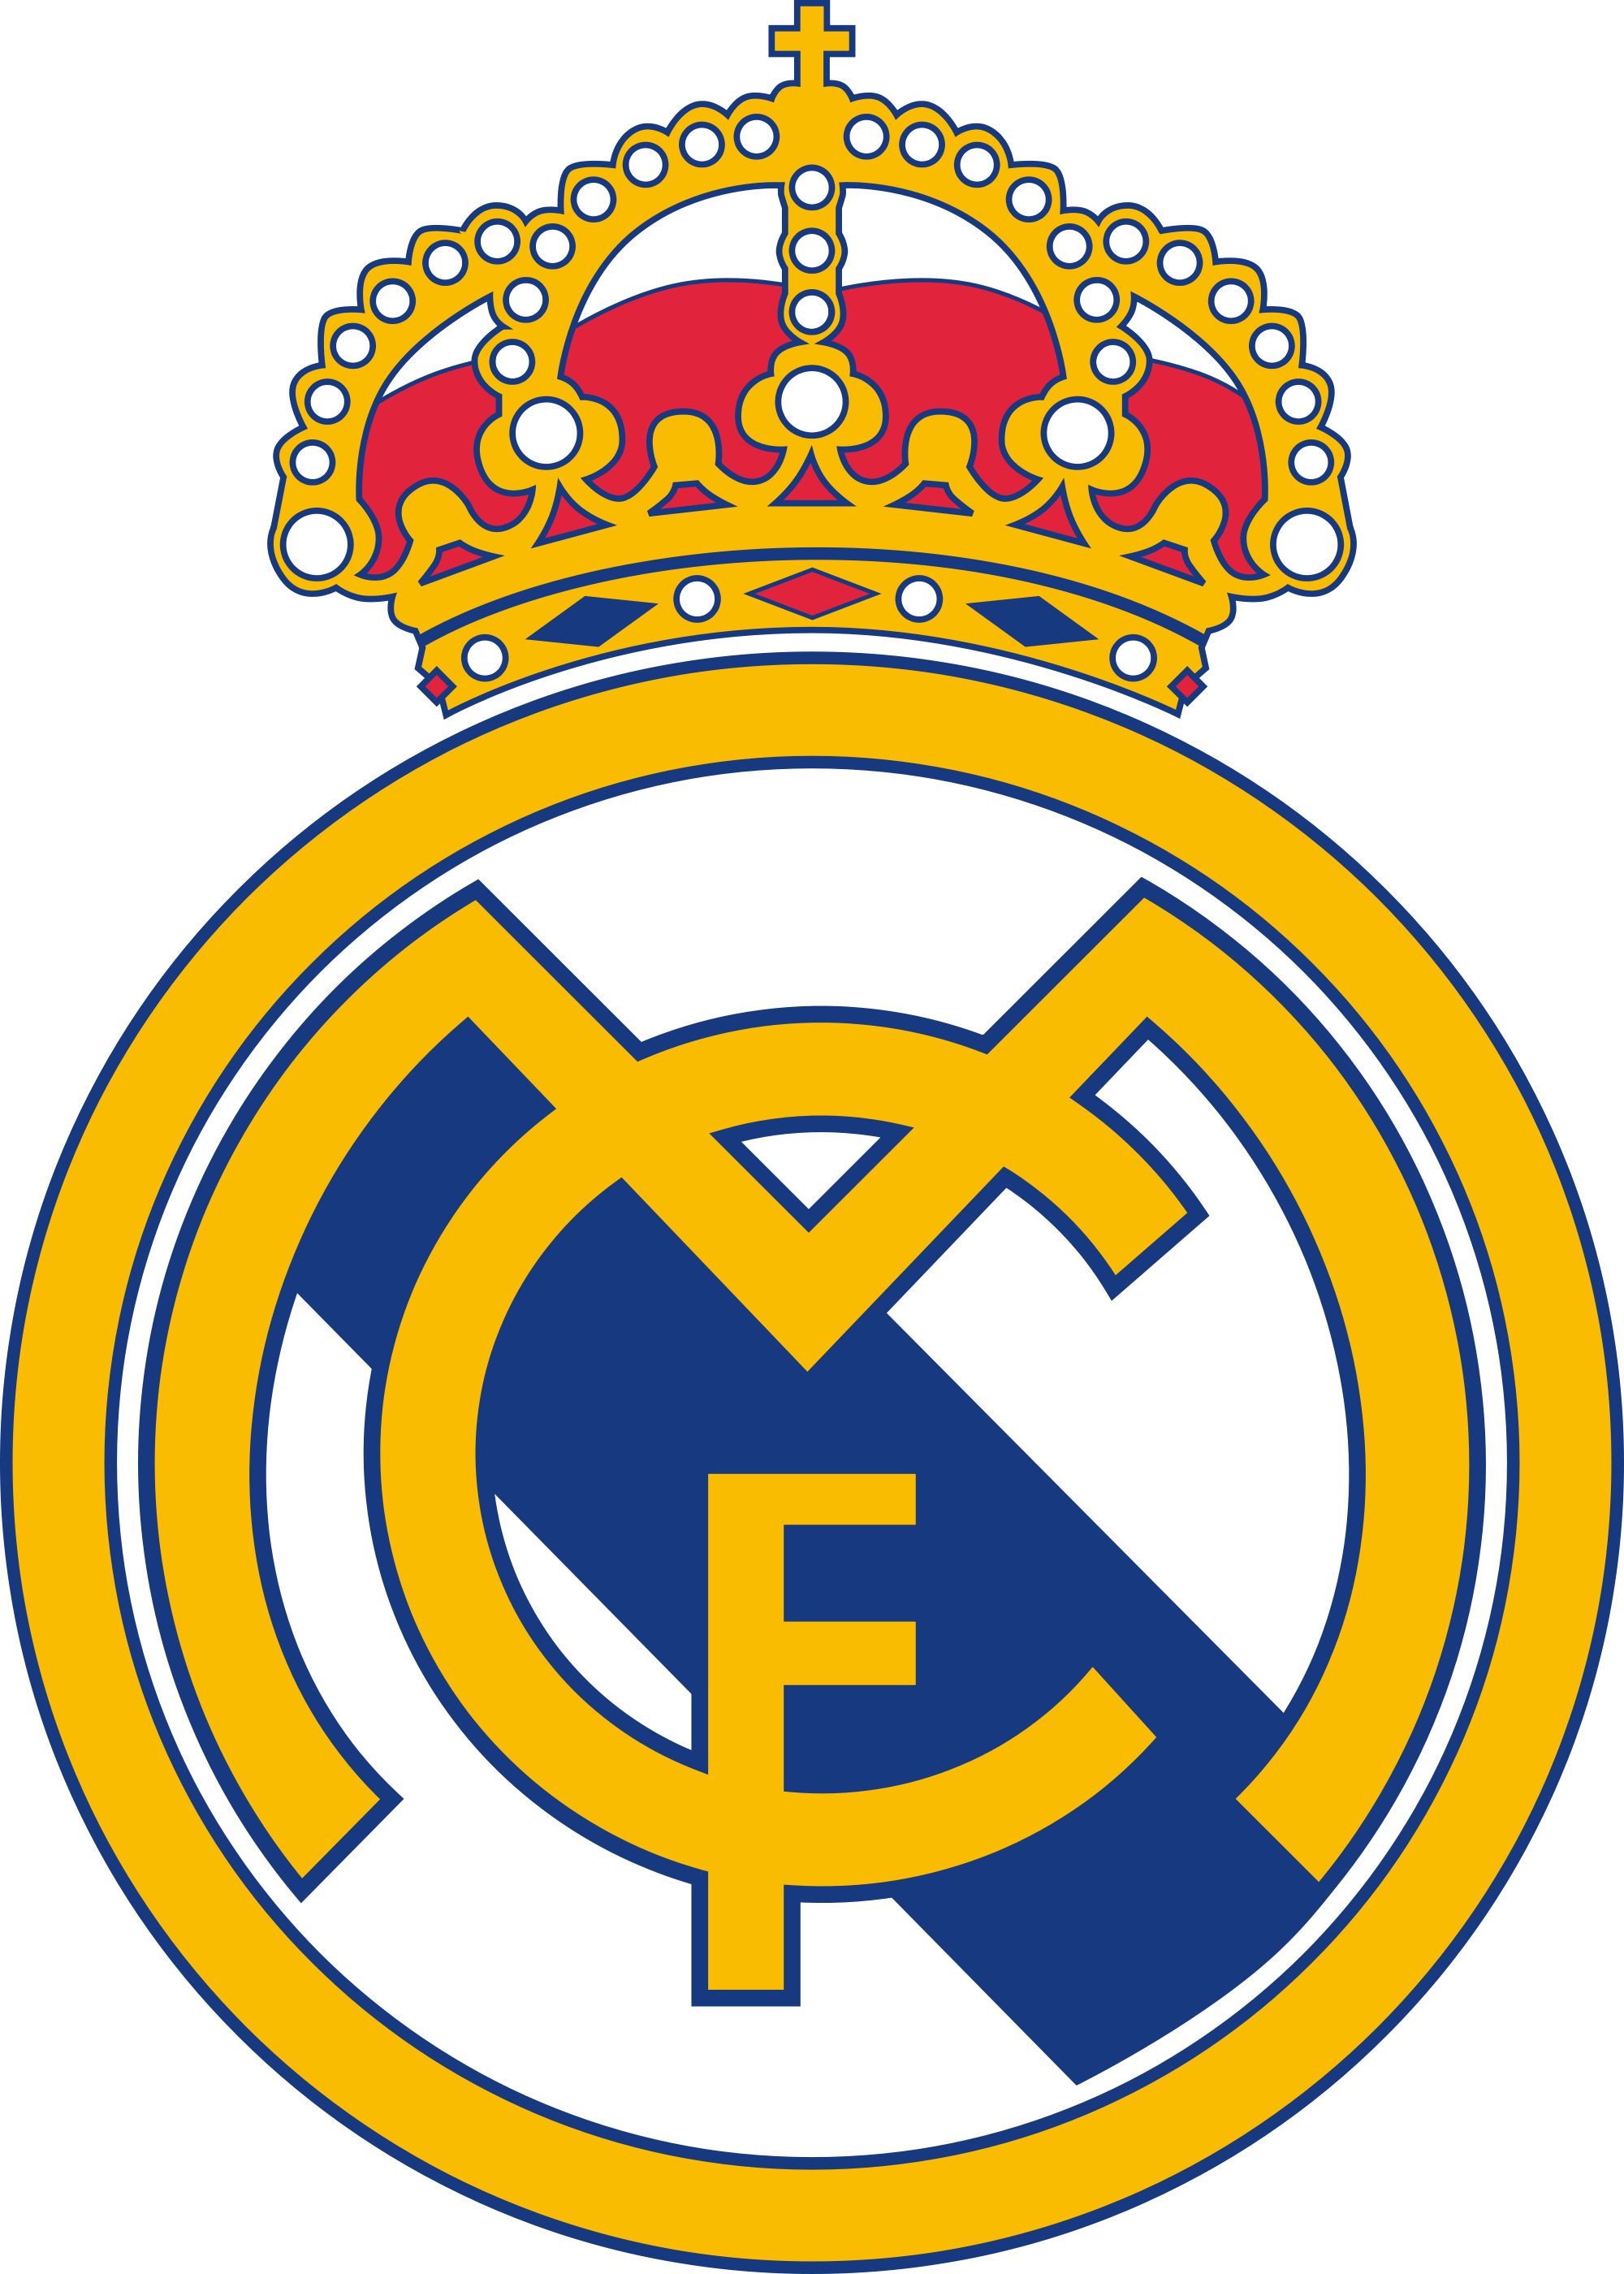 Real madrid logo png. Club clipart transparent background